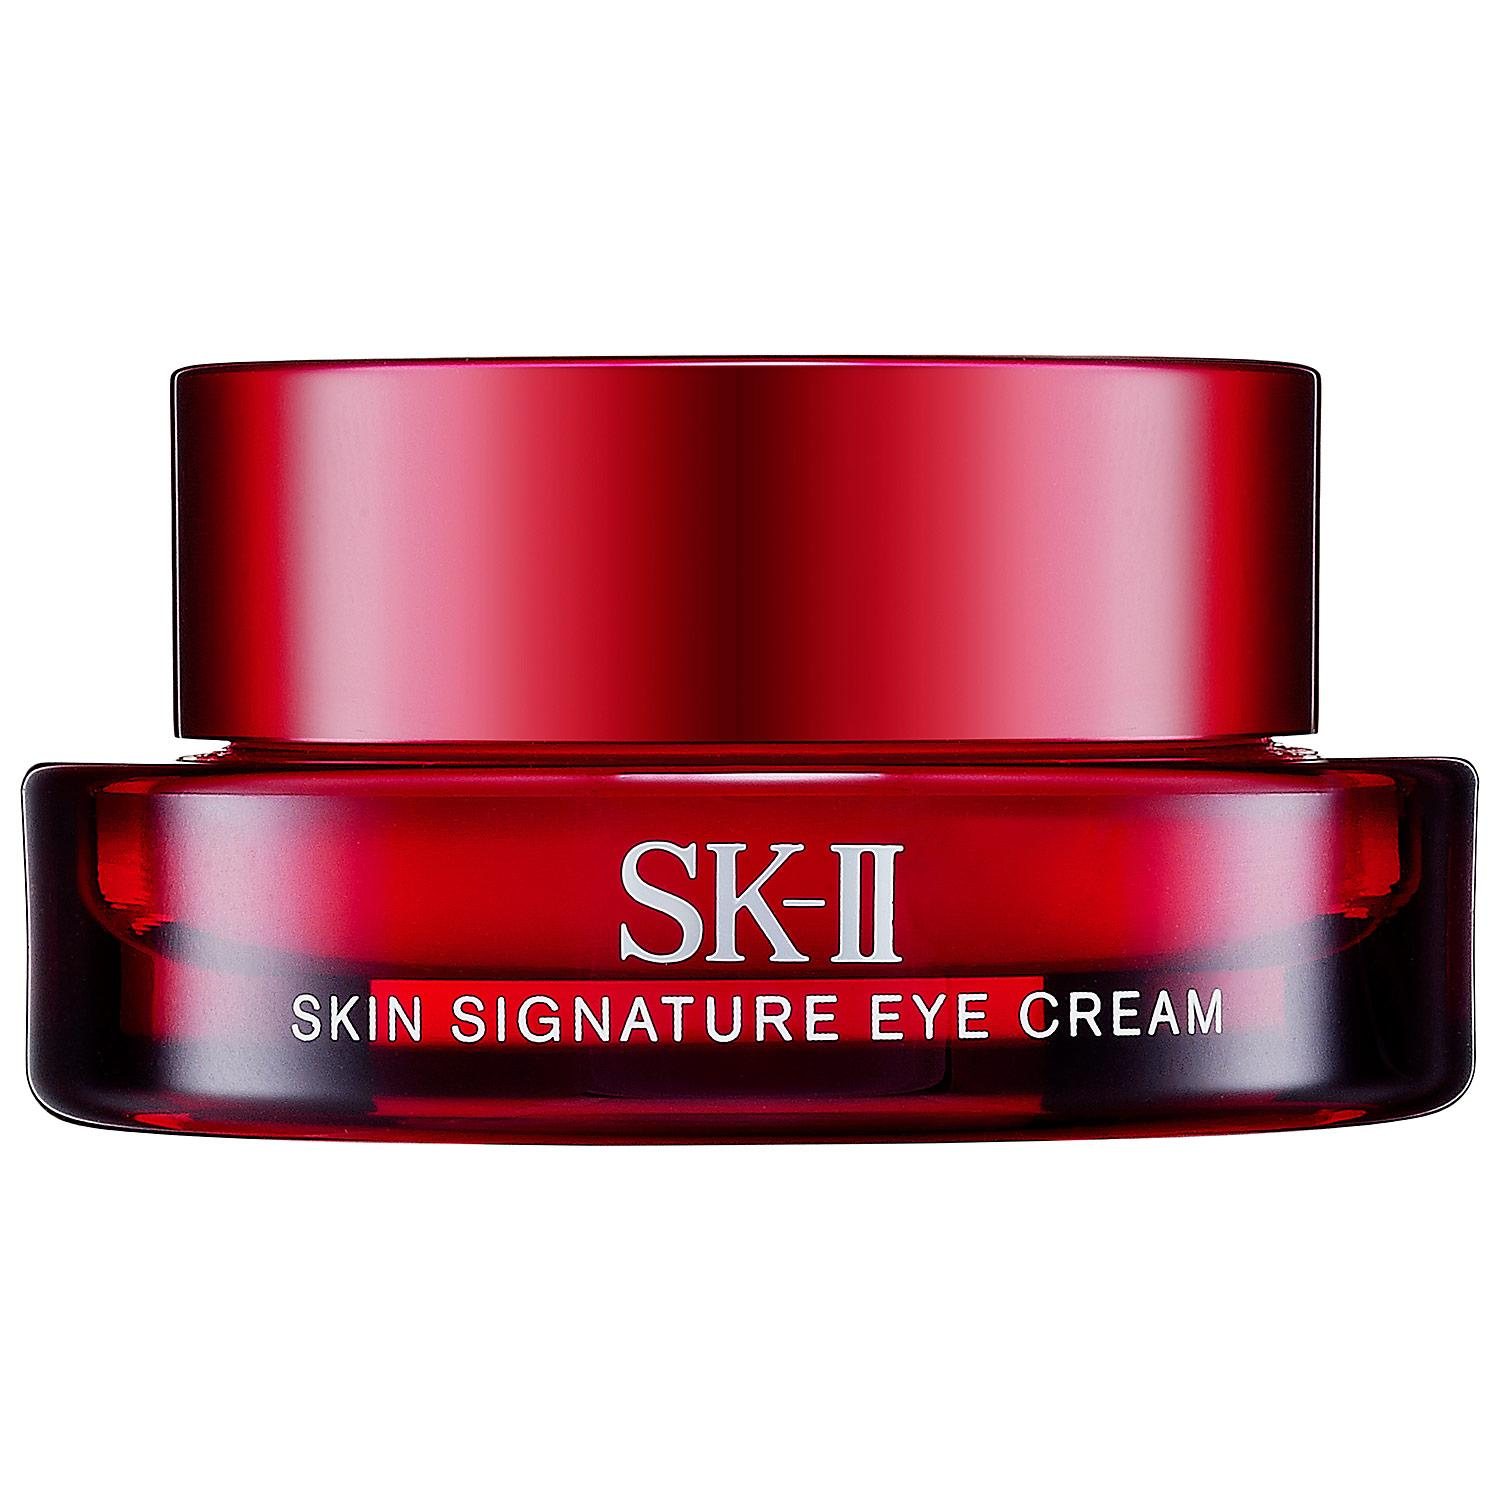 Skin Signature Eye Cream